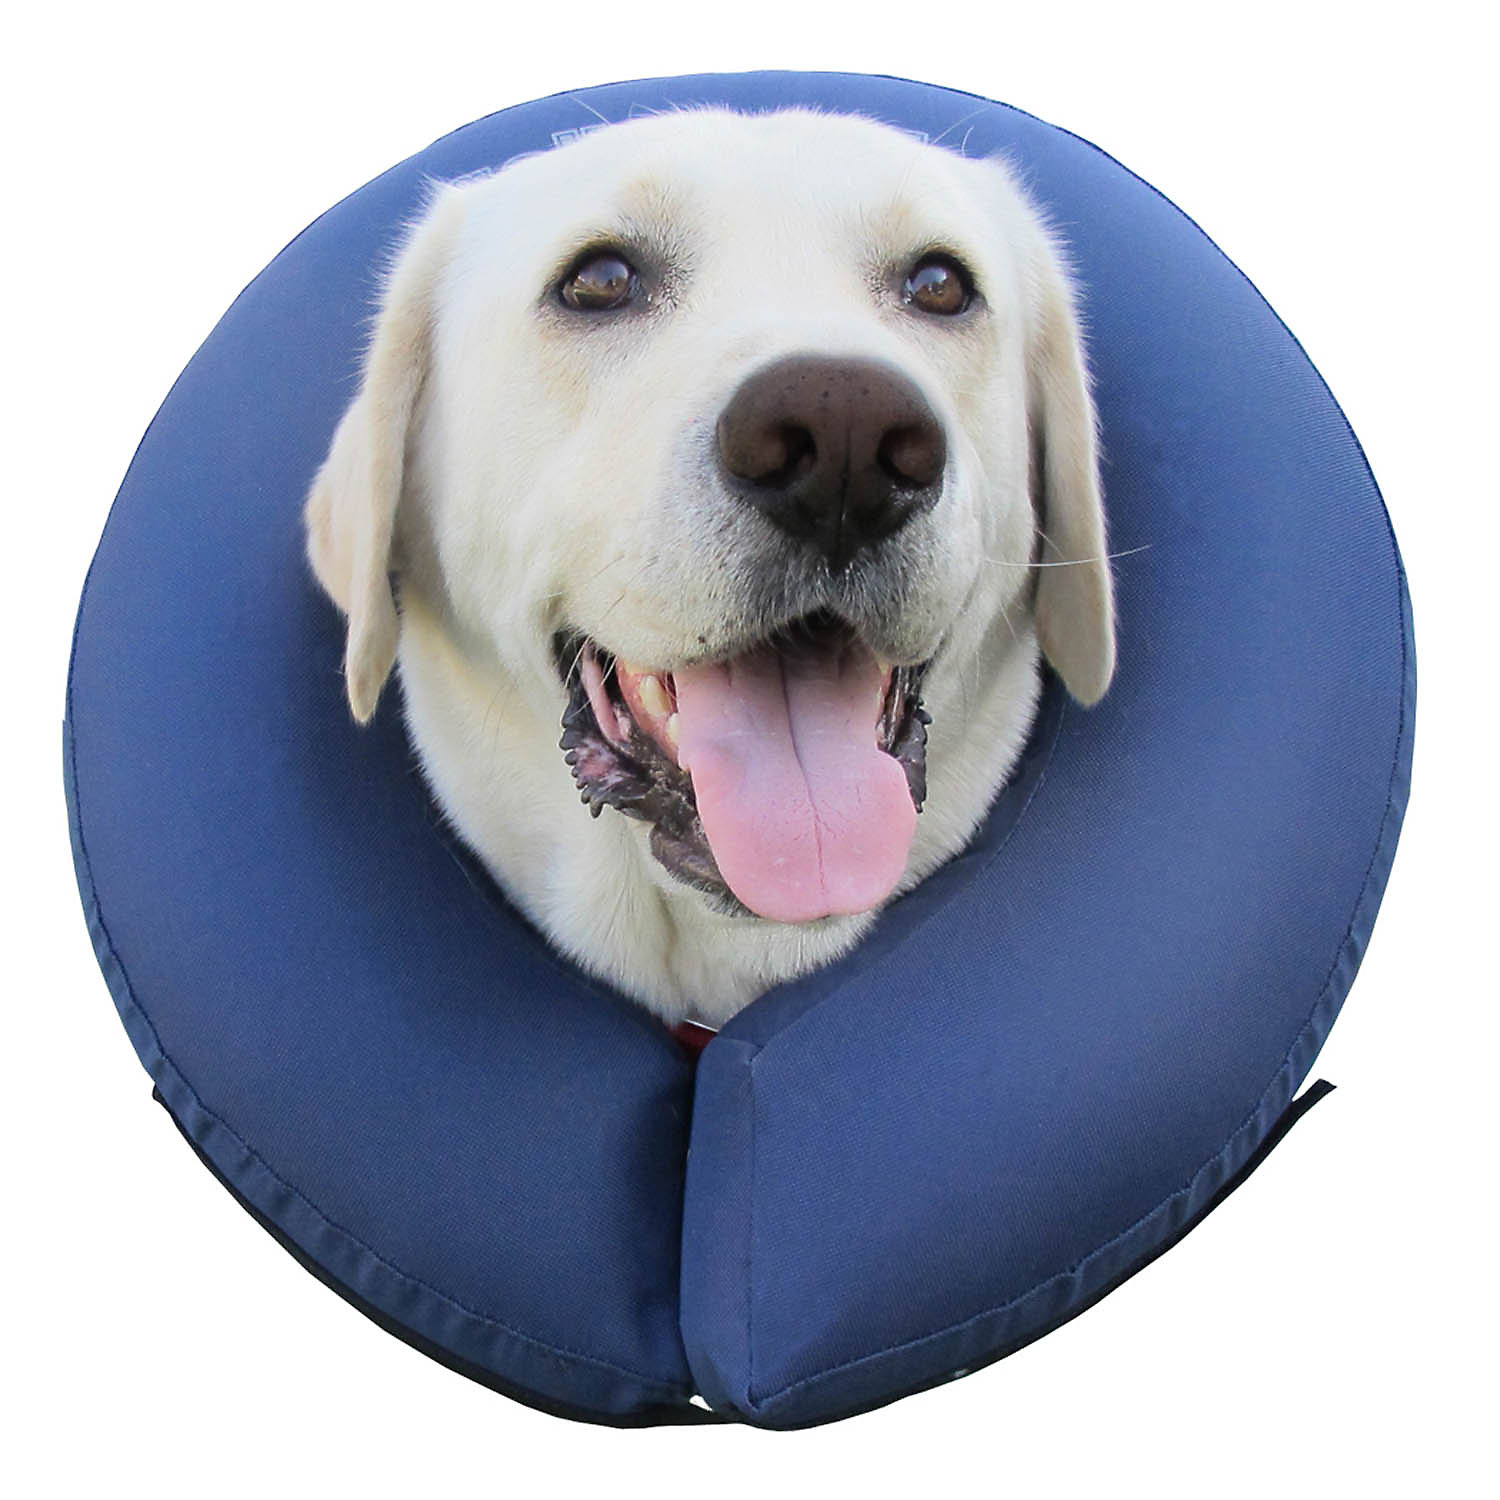 ProCollar Premium Inflatable Protective Collar, Size: Extra Large, Color: Blue